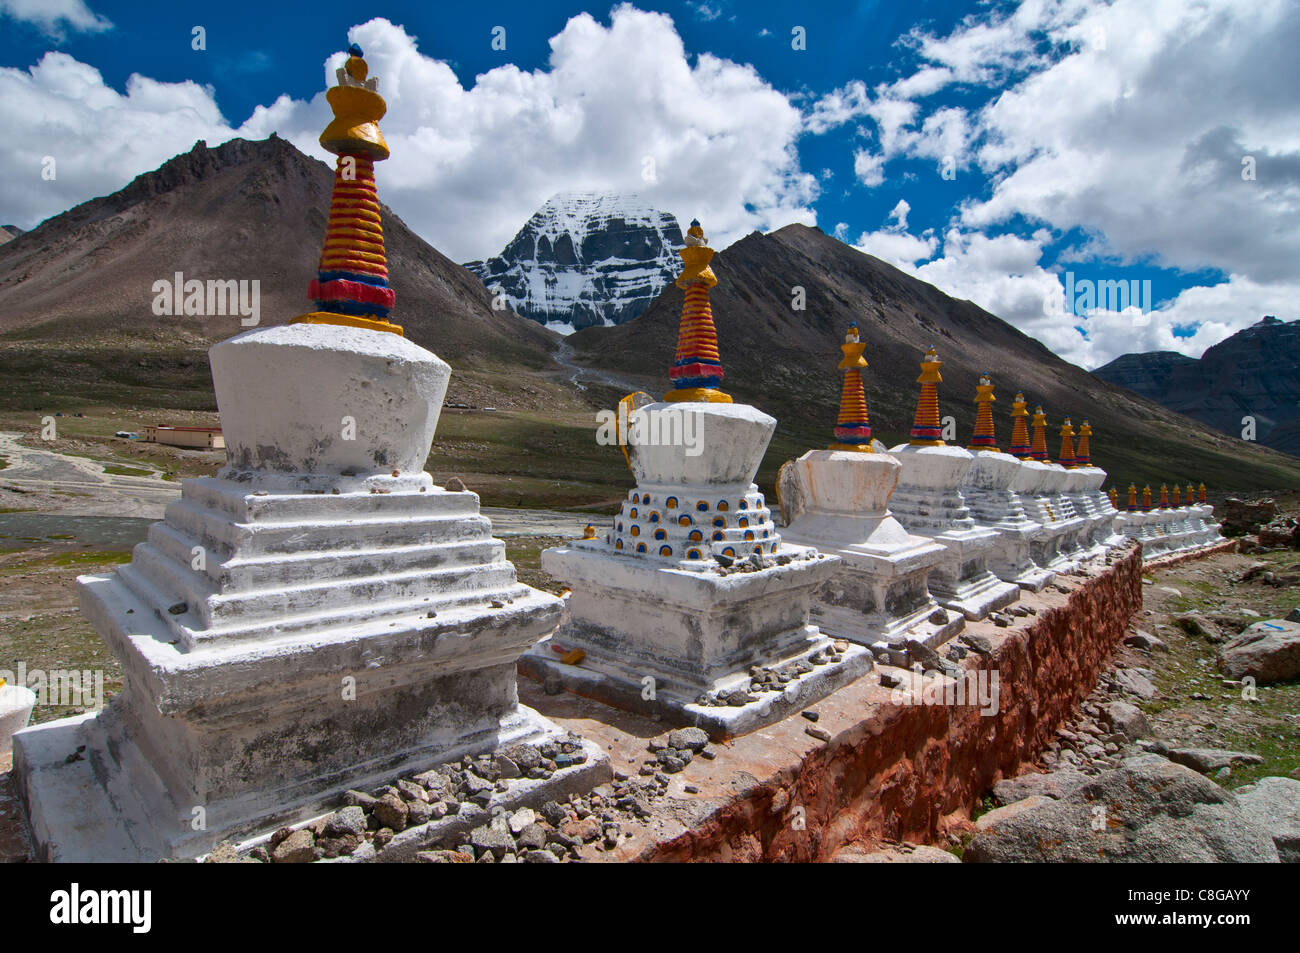 Chortens, prayer stupas below the holy mountain Mount Kailash in Western Tibet, China - Stock Image